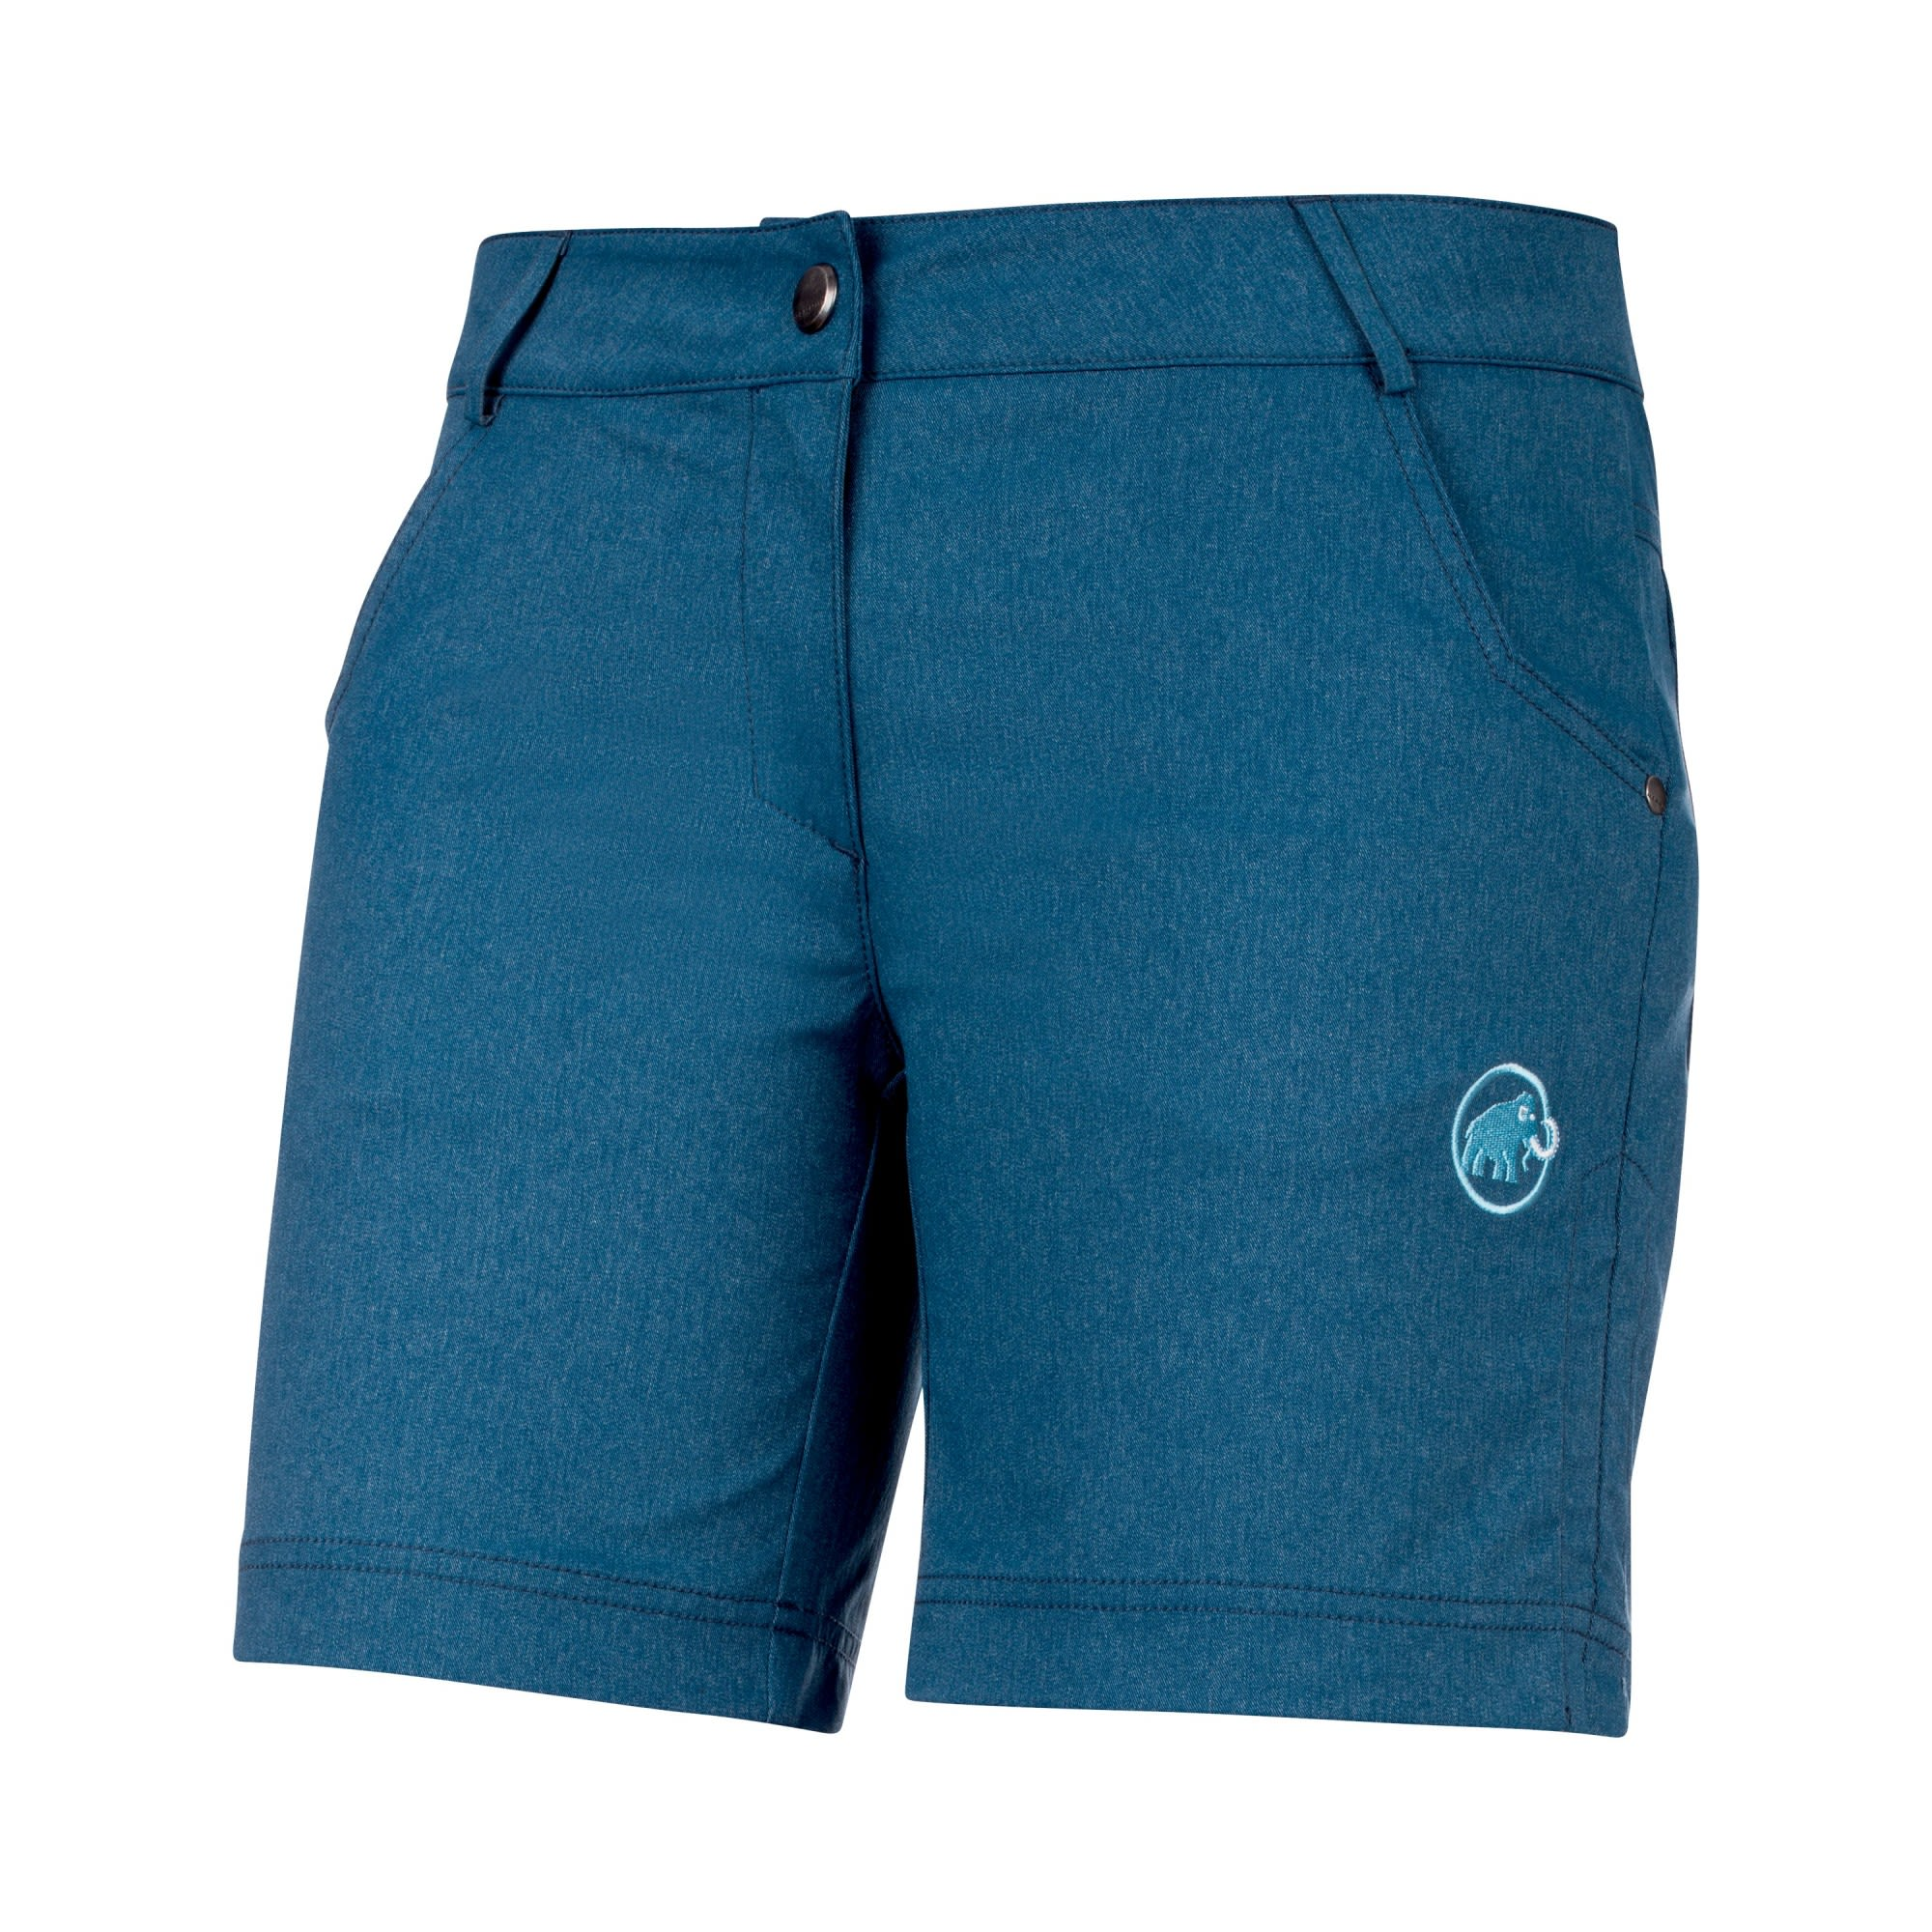 Mammut Massone Shorts Blau, Female Shorts, 36